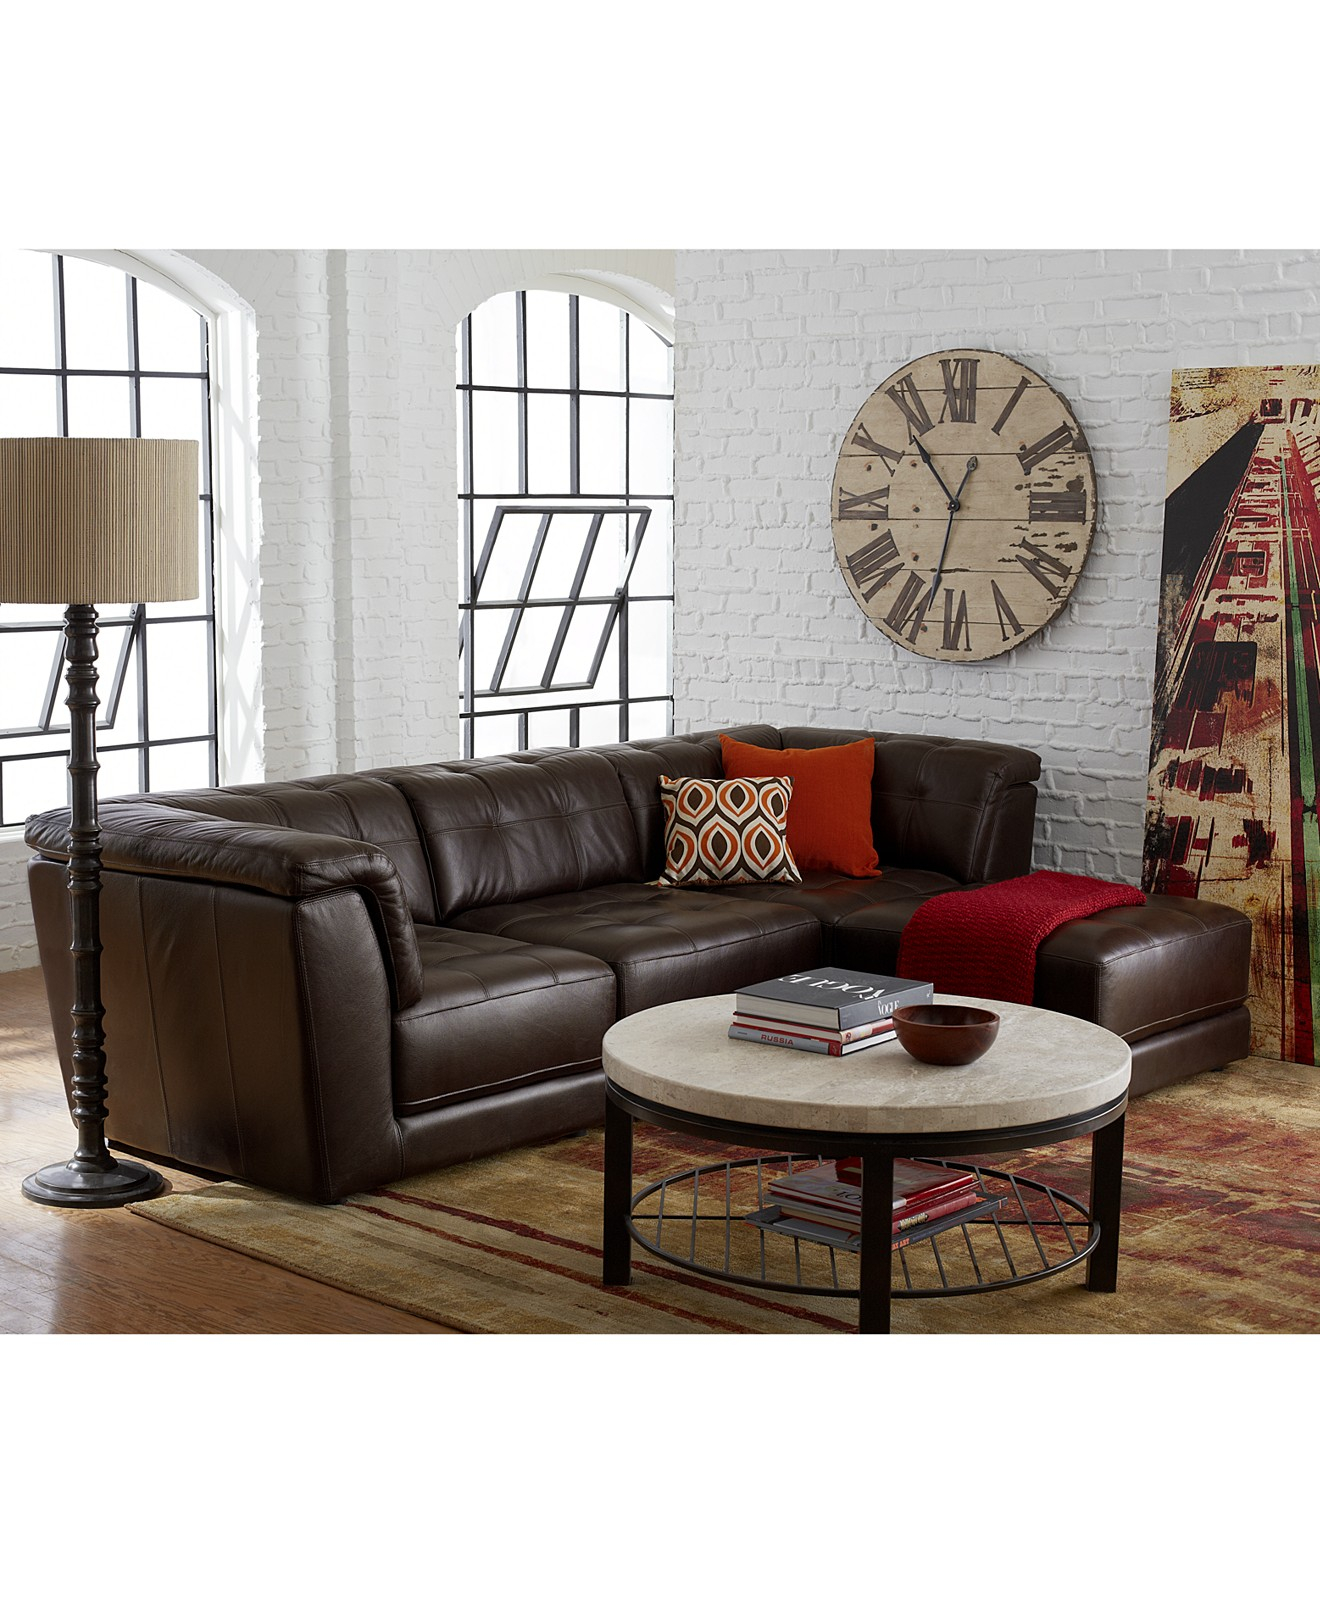 Elite Living Room Sets Leather Ashley Furniture Macy's Department Store with regard to Ashley Furniture Locations